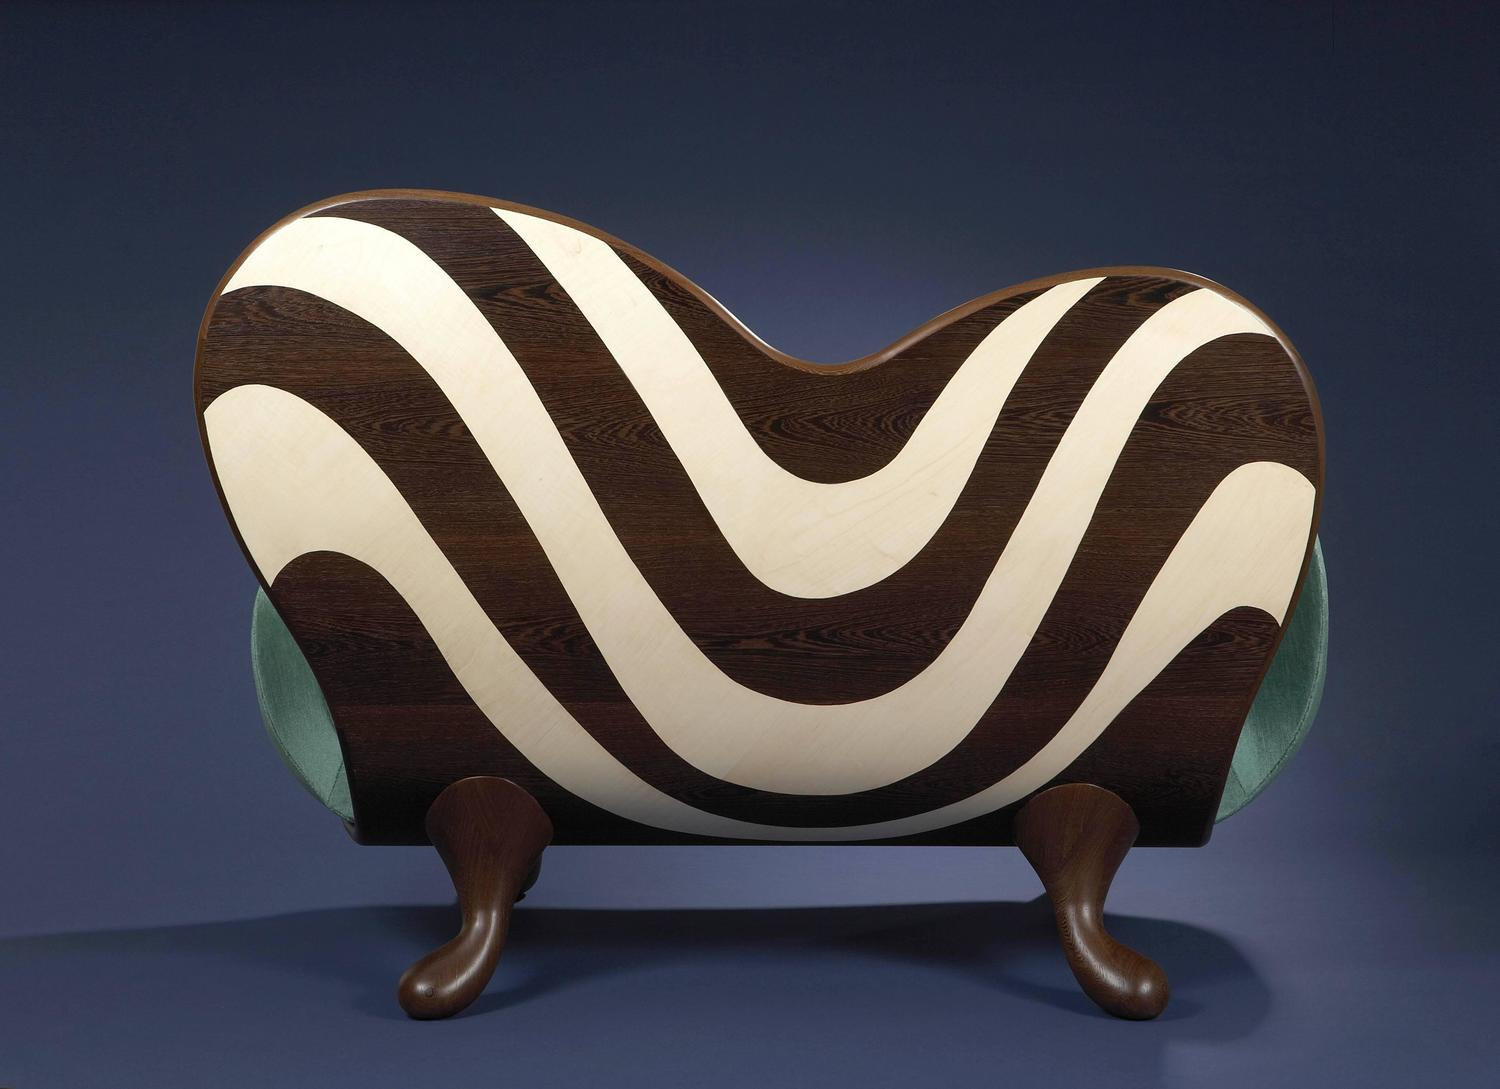 Surf sofa by mattia bonetti cat berro edition for sale at 1stdibs - Cat berro mobili ...